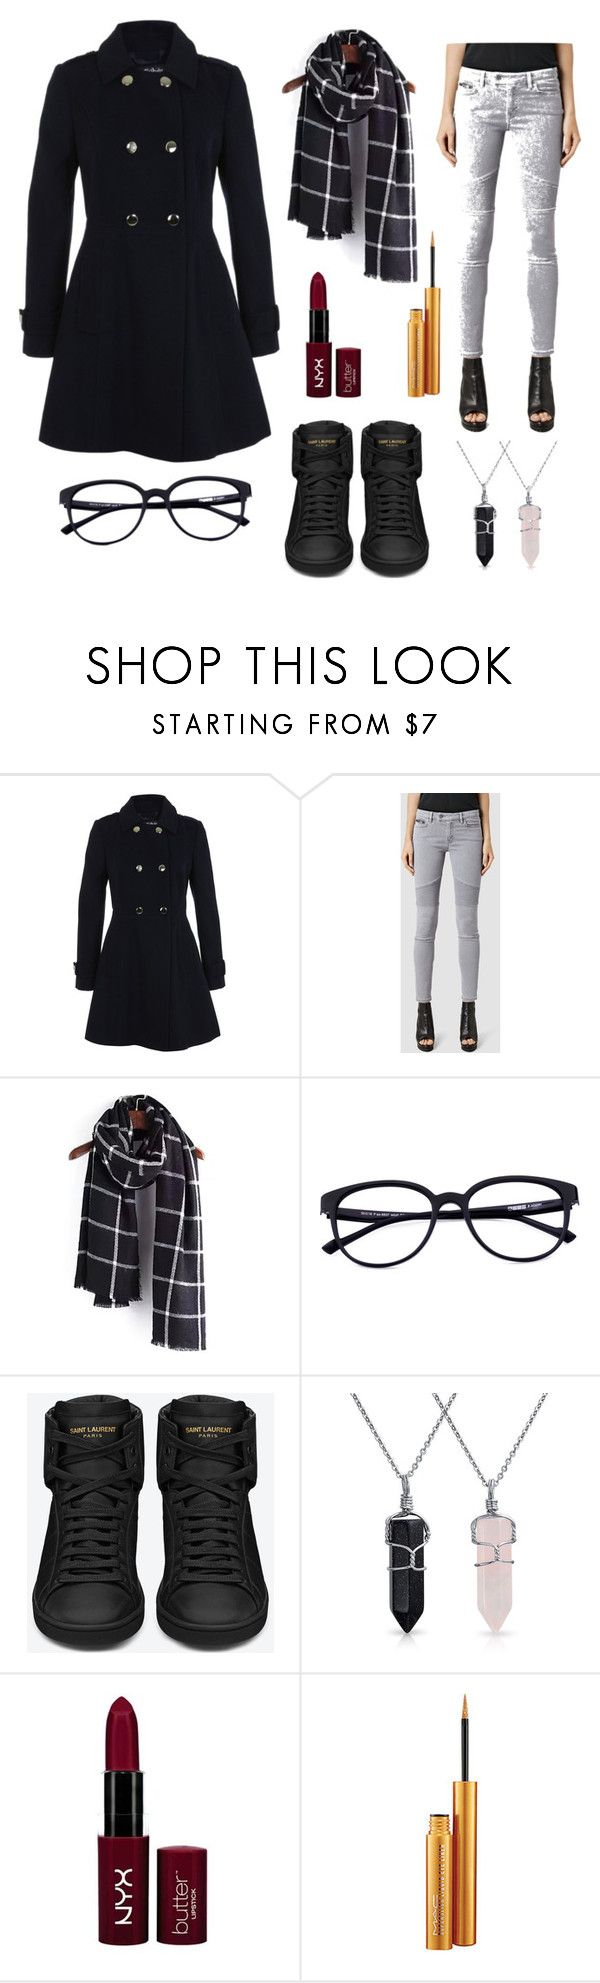 """Untitled #3"" by luminous-intensity ❤ liked on Polyvore featuring Miss Selfridge, AllSaints, Yves Saint Laurent, Bling Jewelry, NYX and MAC Cosmetics"